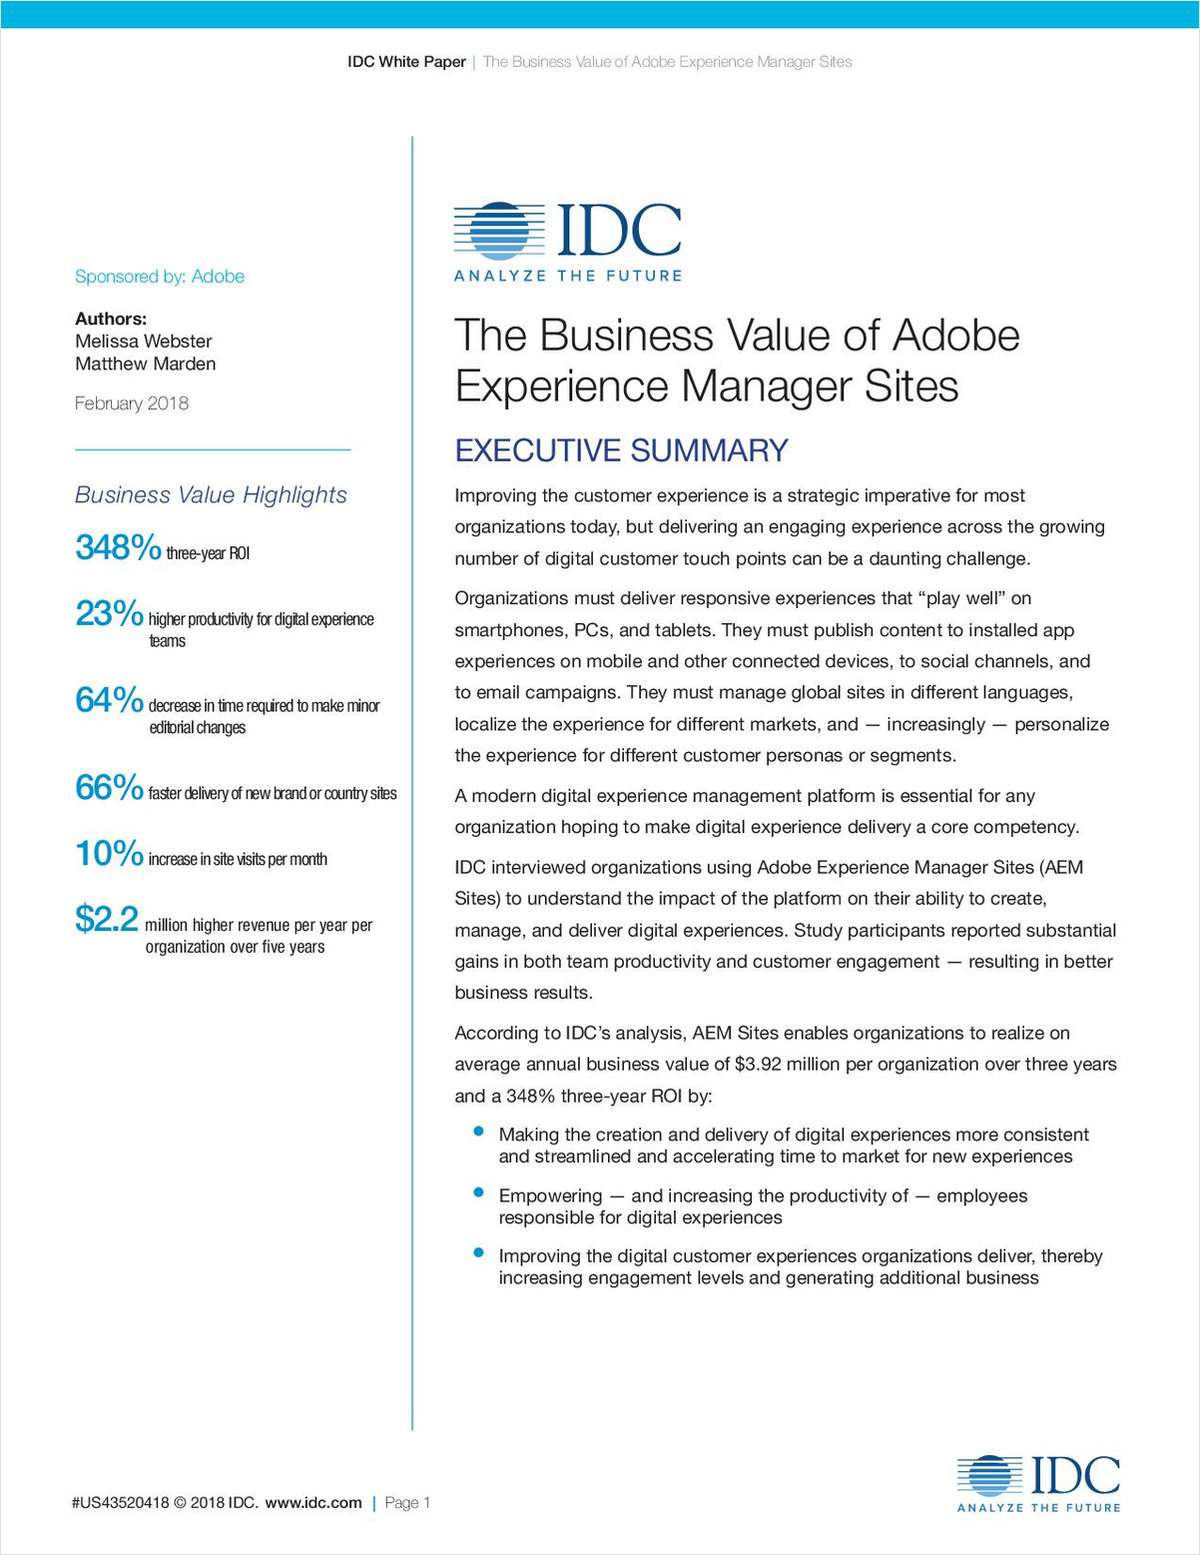 The Business Value of Adobe Experience Manager Sites, Free